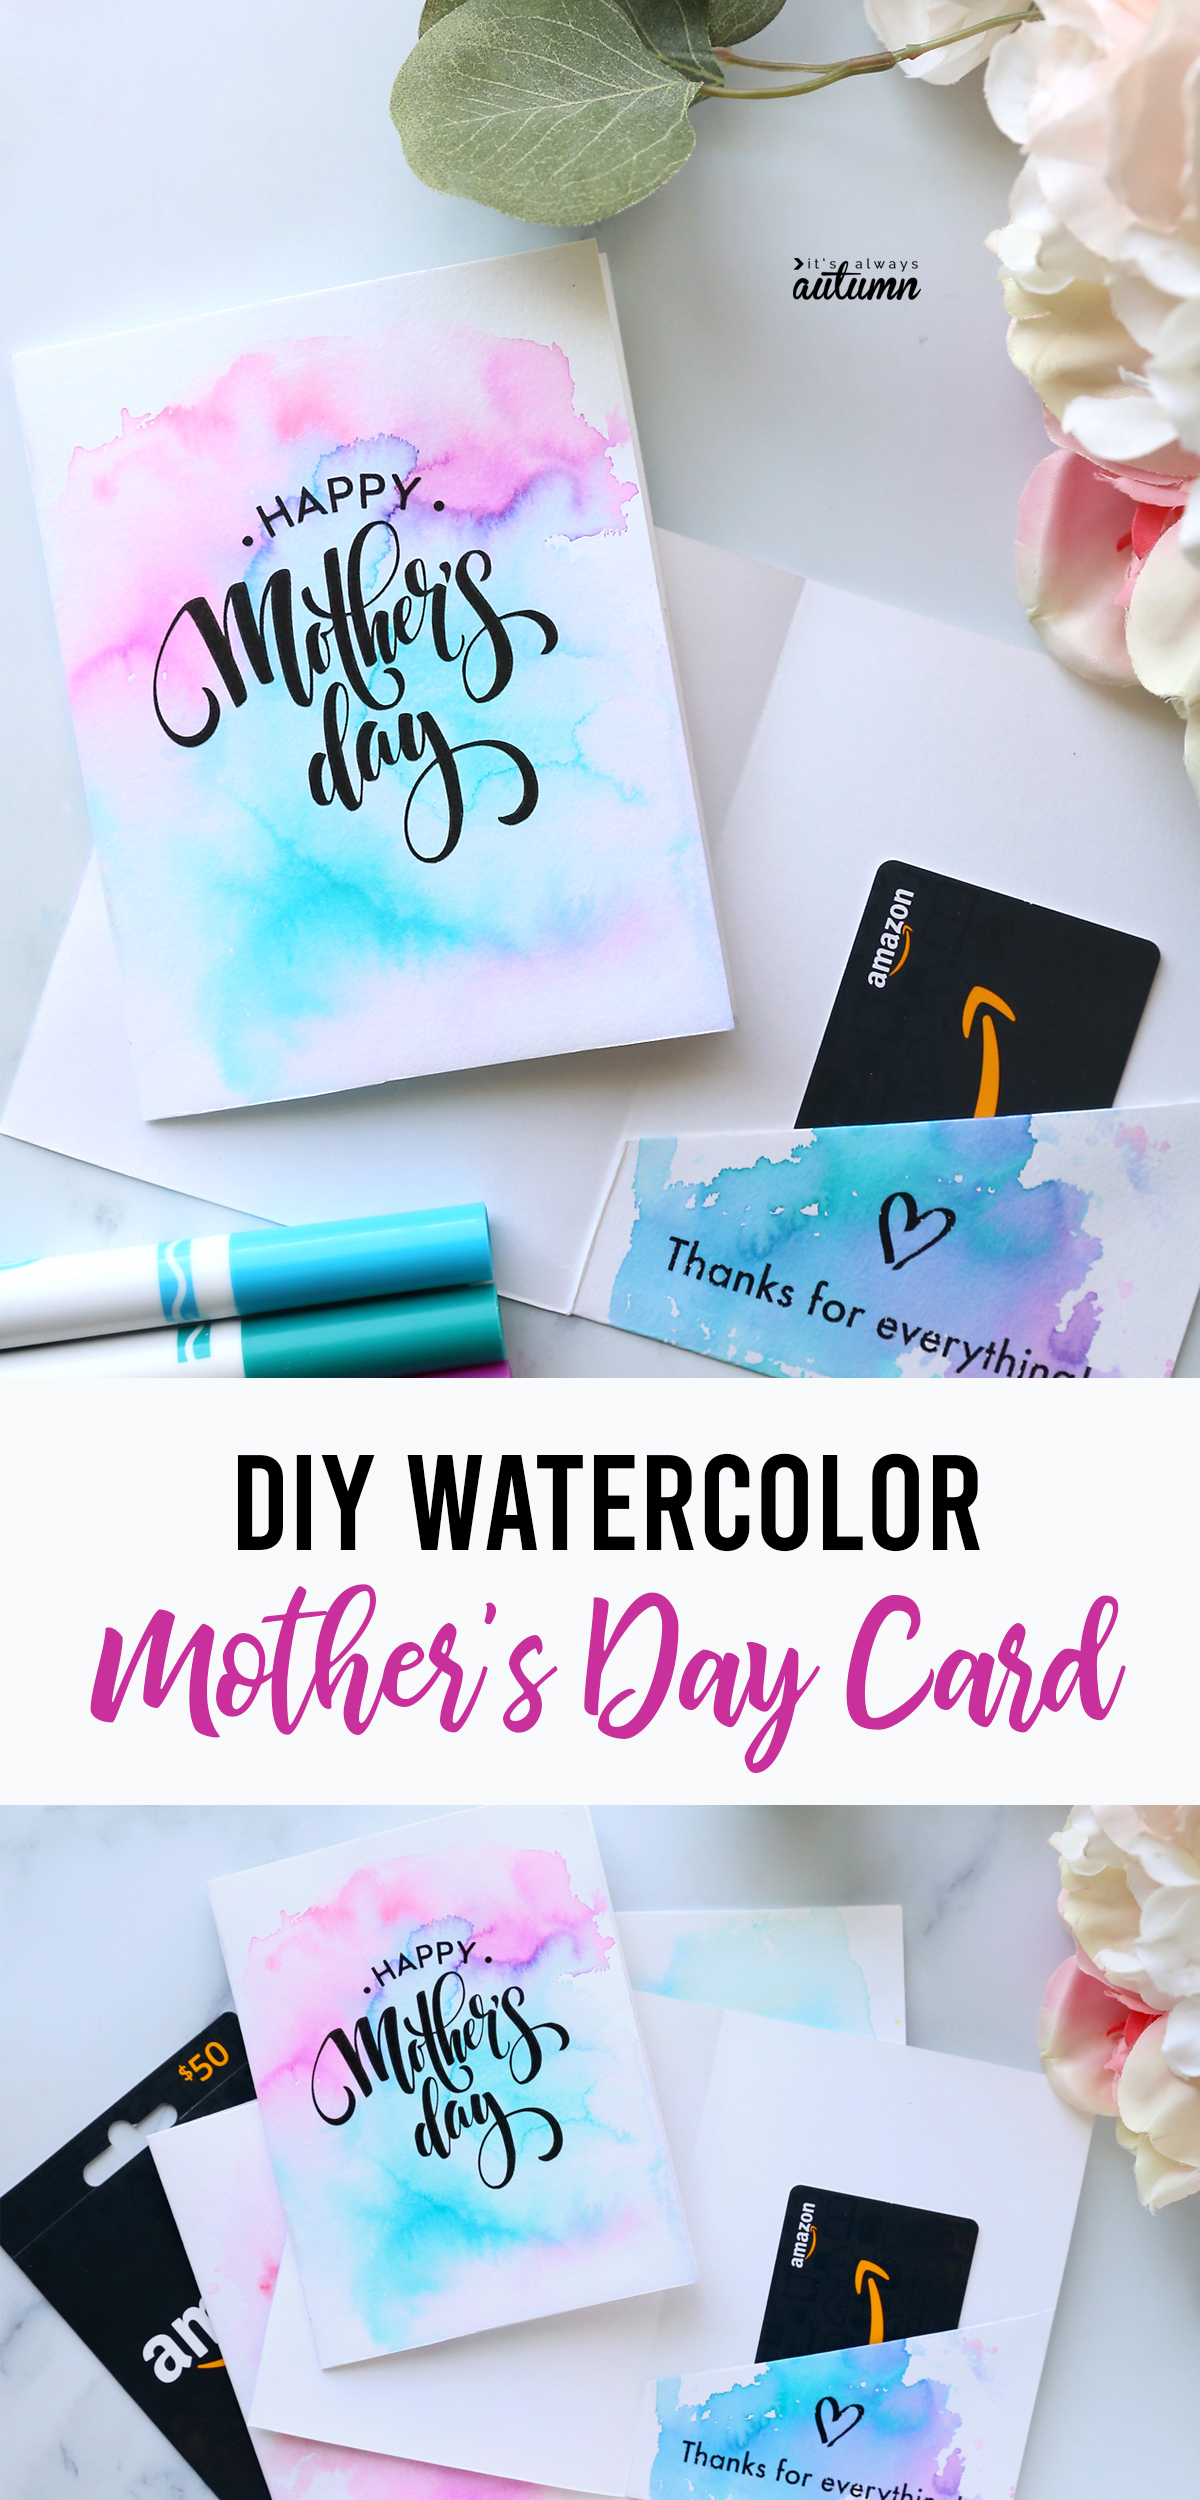 DIY watercolor Mother's Day cards with Amazon gift cards inside